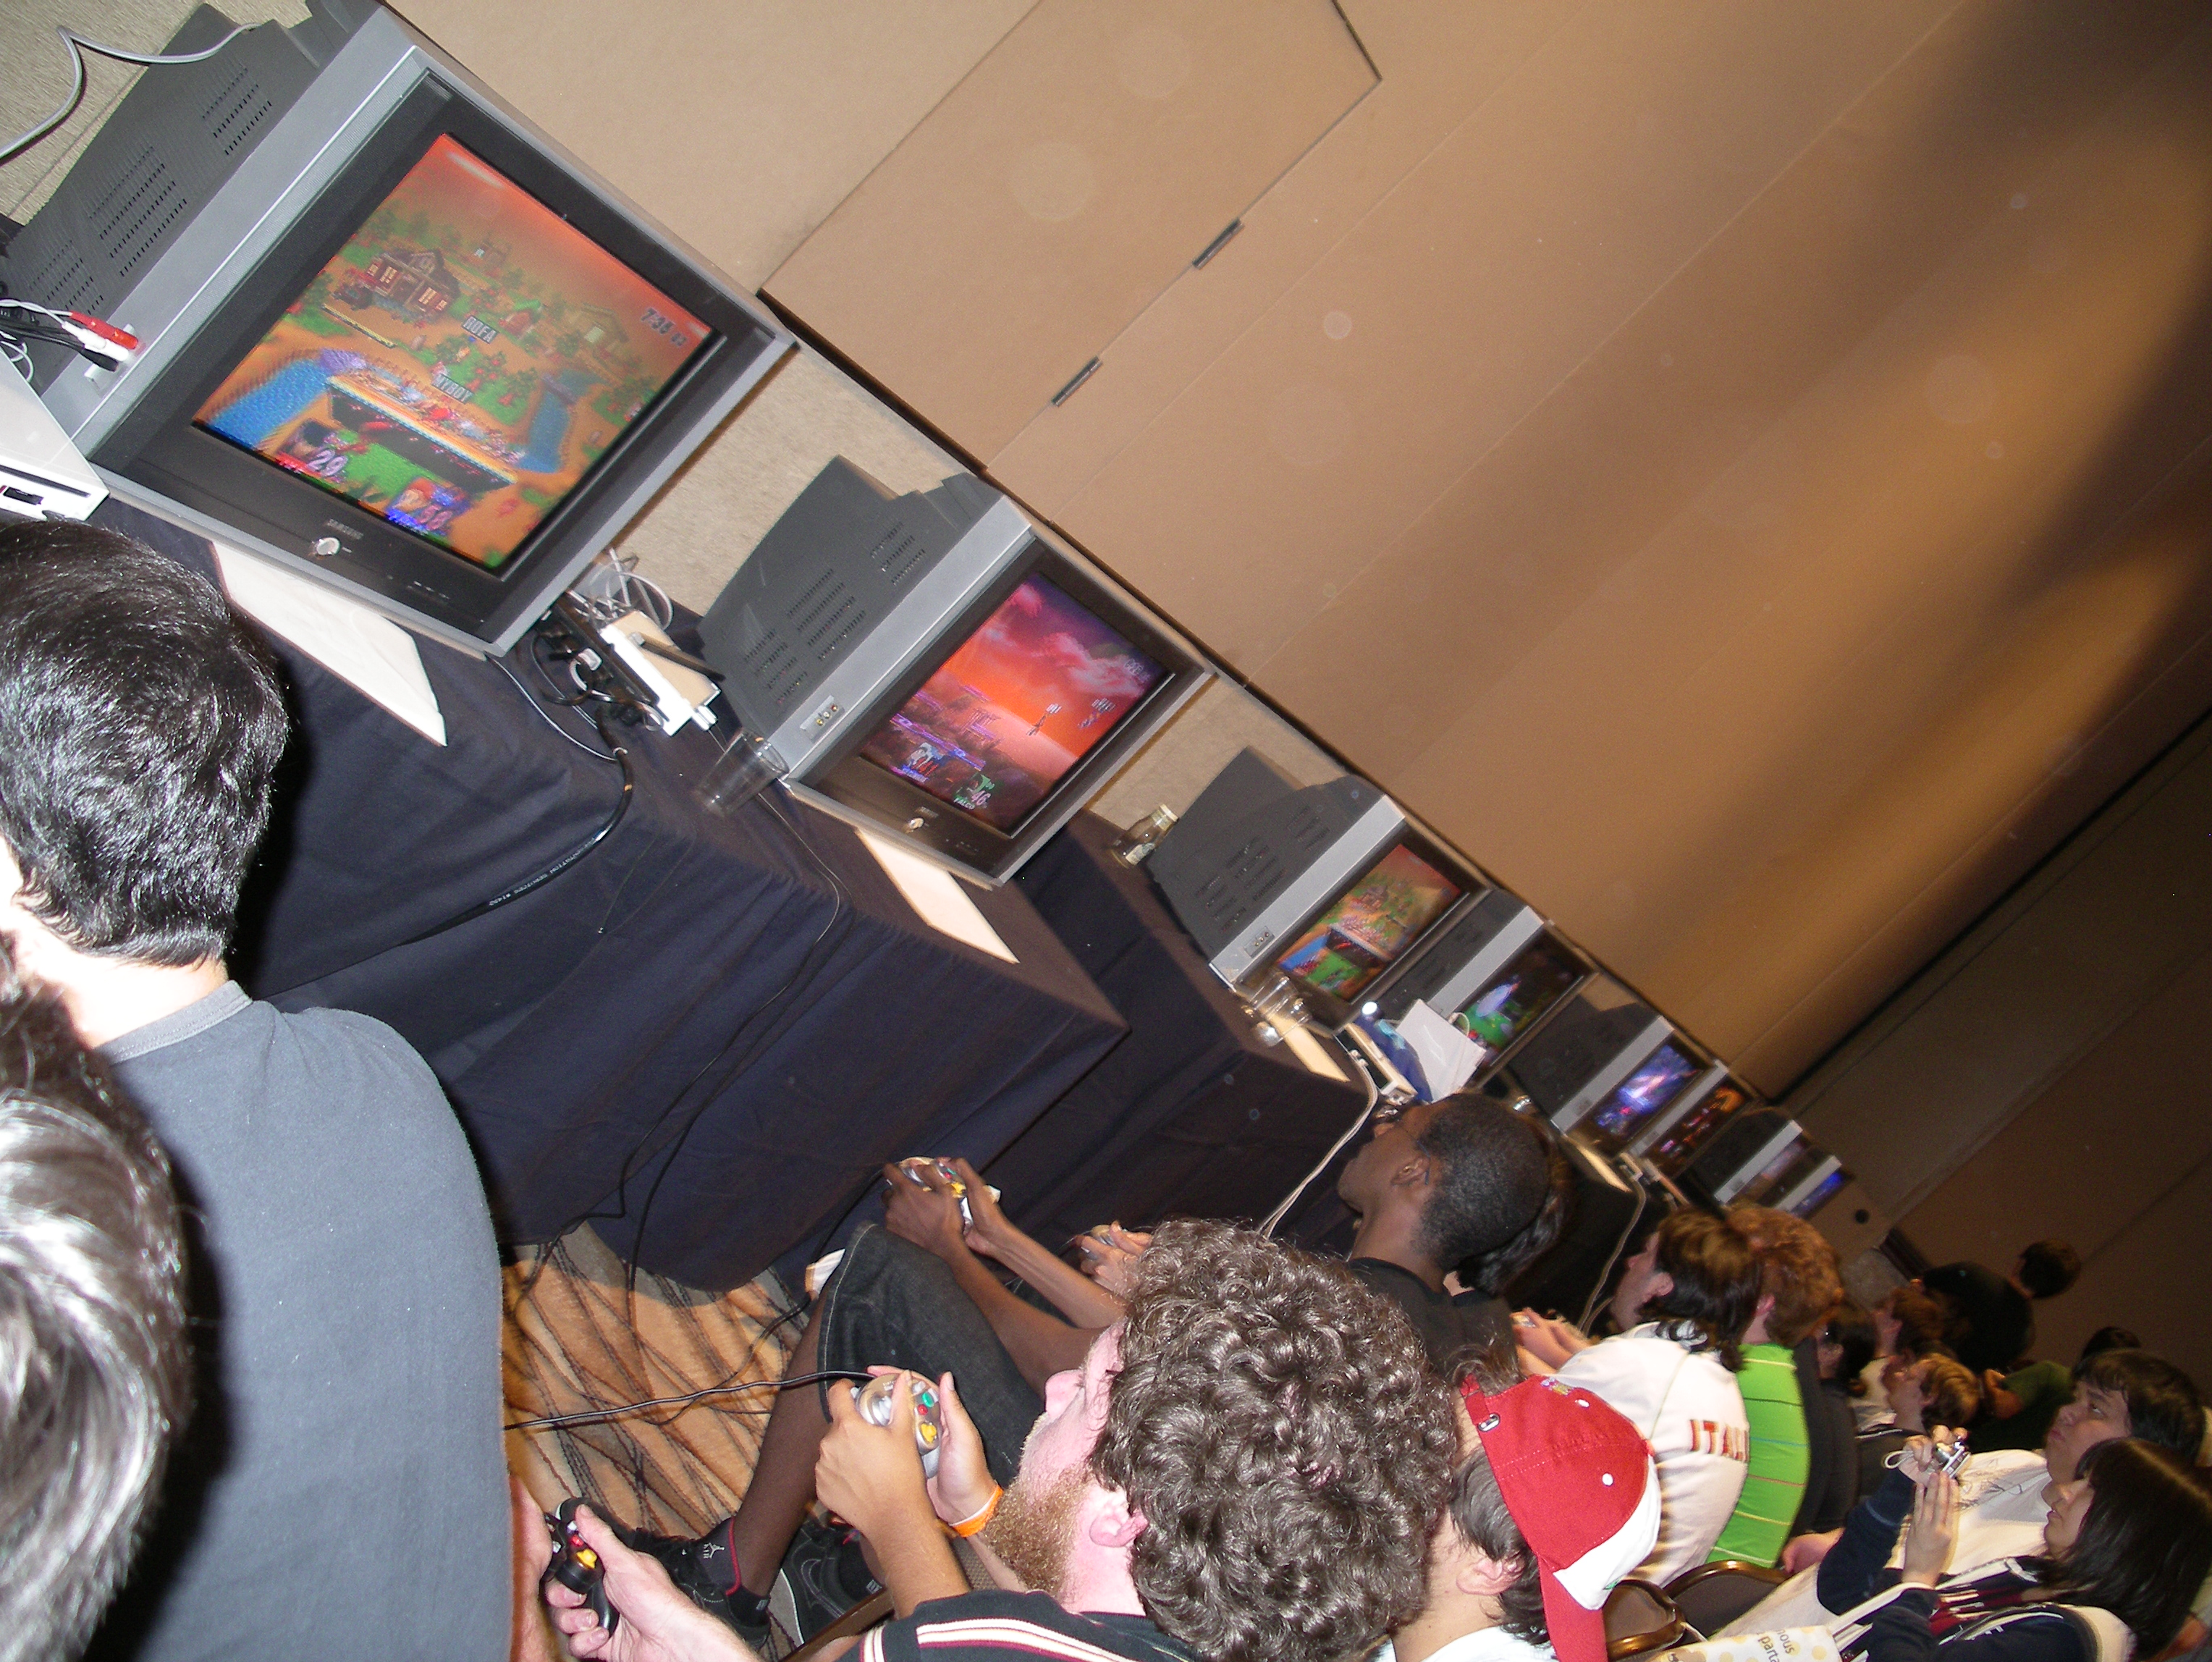 File:Evo 2009 - 3731301896 - Super Smash Bros. play.jpg - Wikimedia Commons